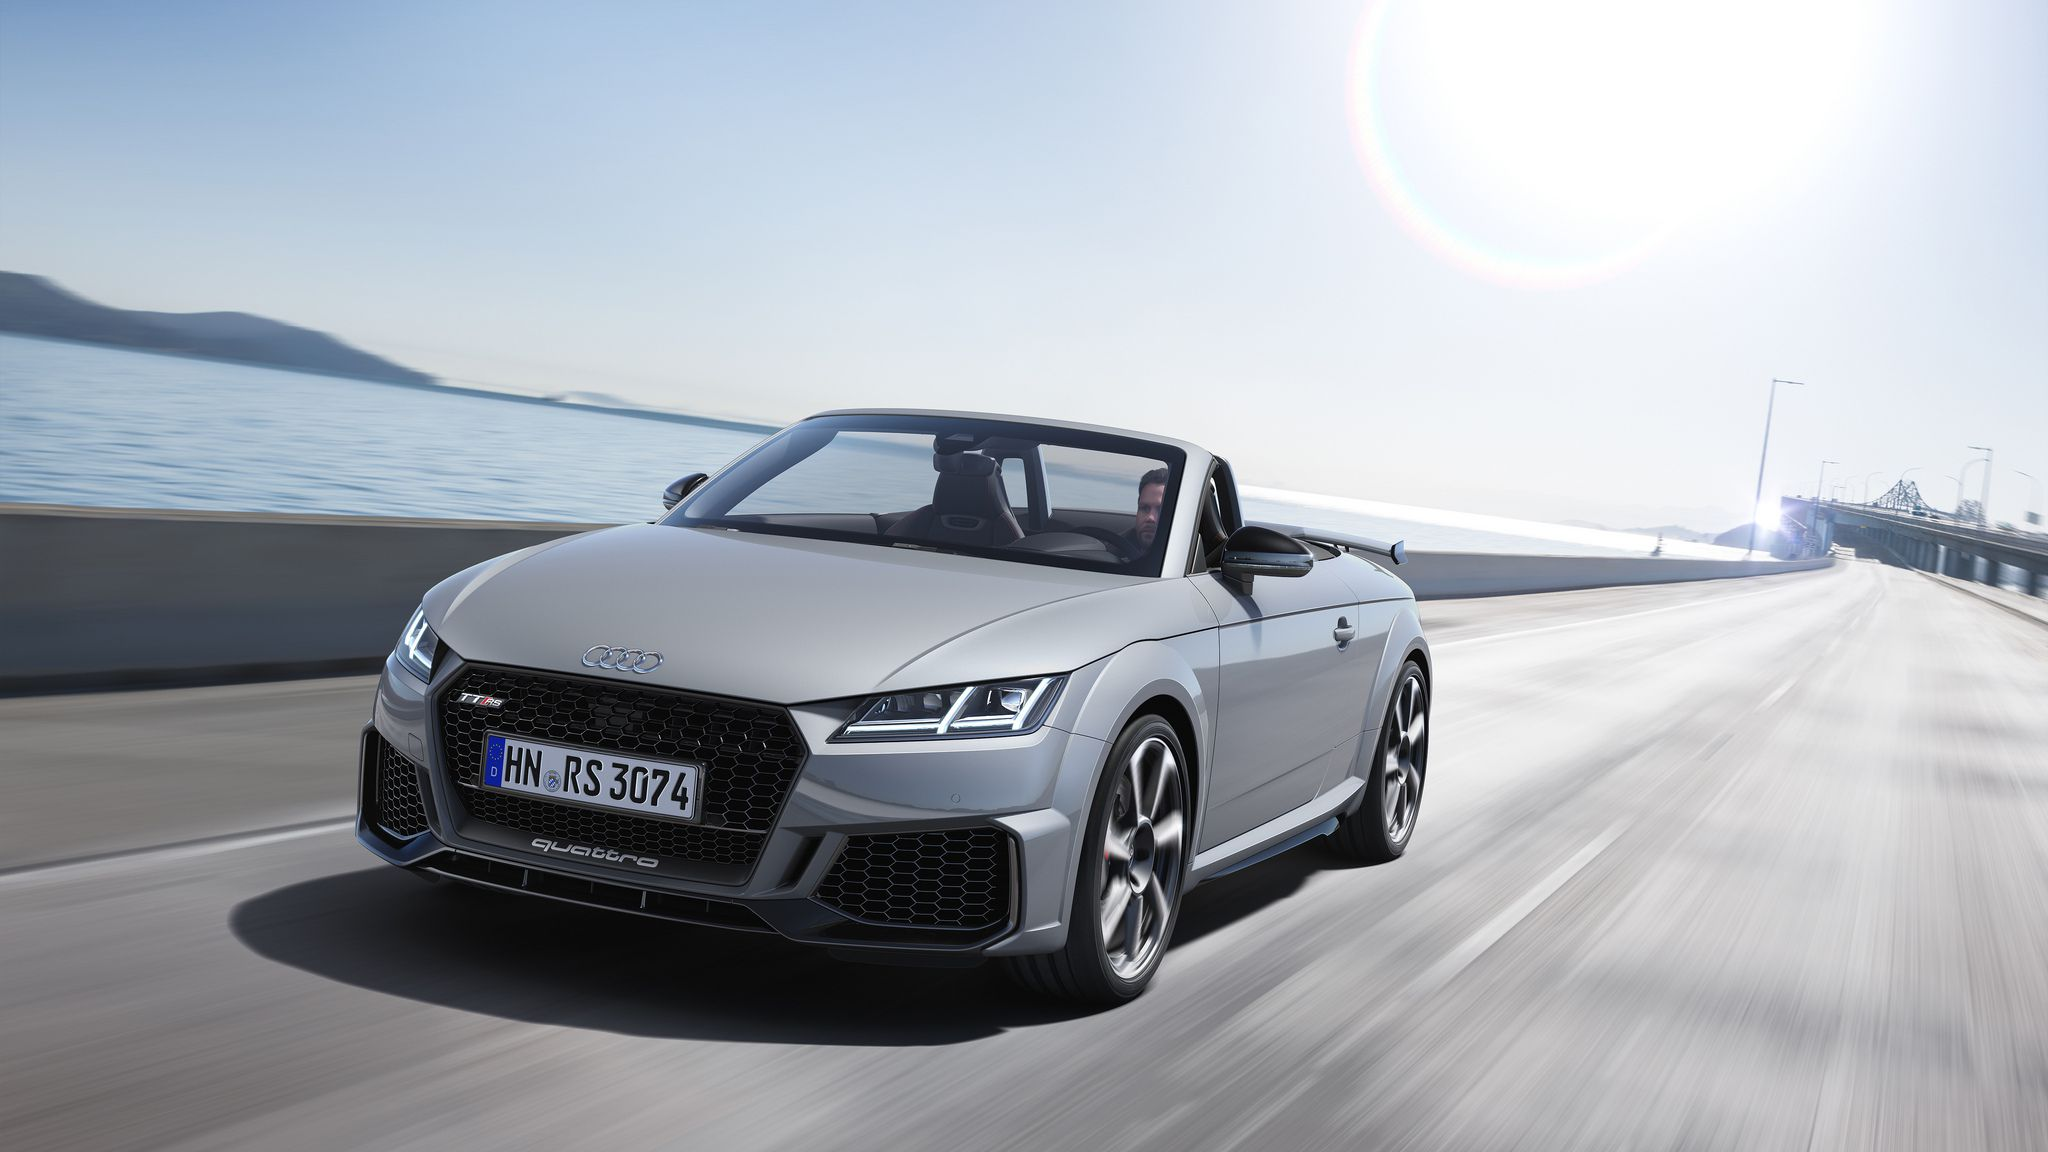 2019 Audi TT RS Roadster at sun rays background